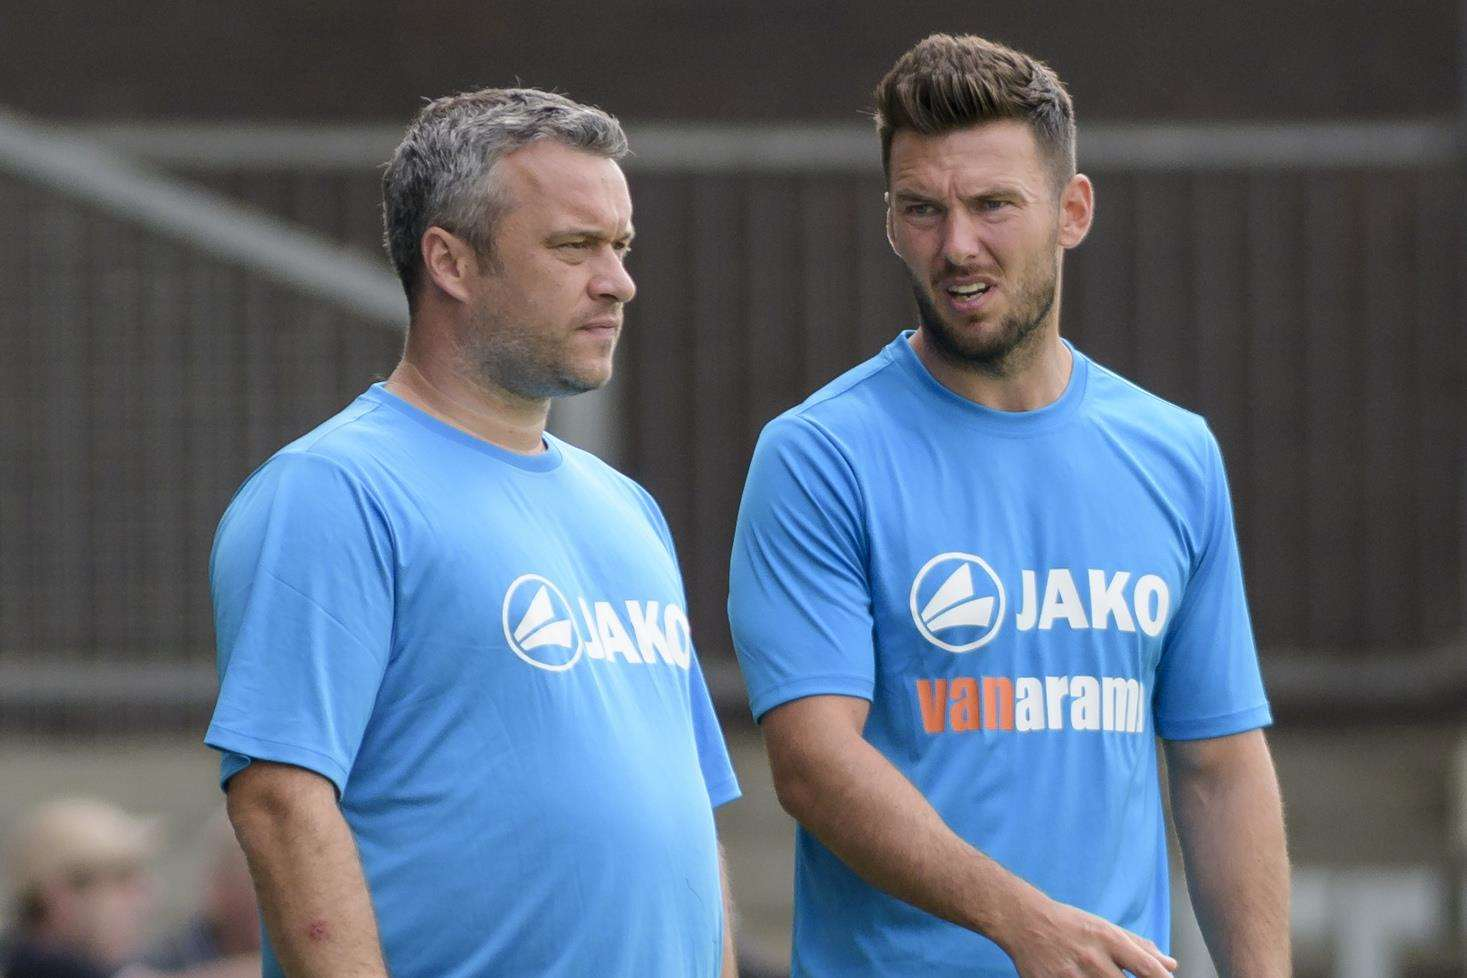 Dartford managers Adam Flanagan, left, and Jamie Coyle. Picture: Andy Payton